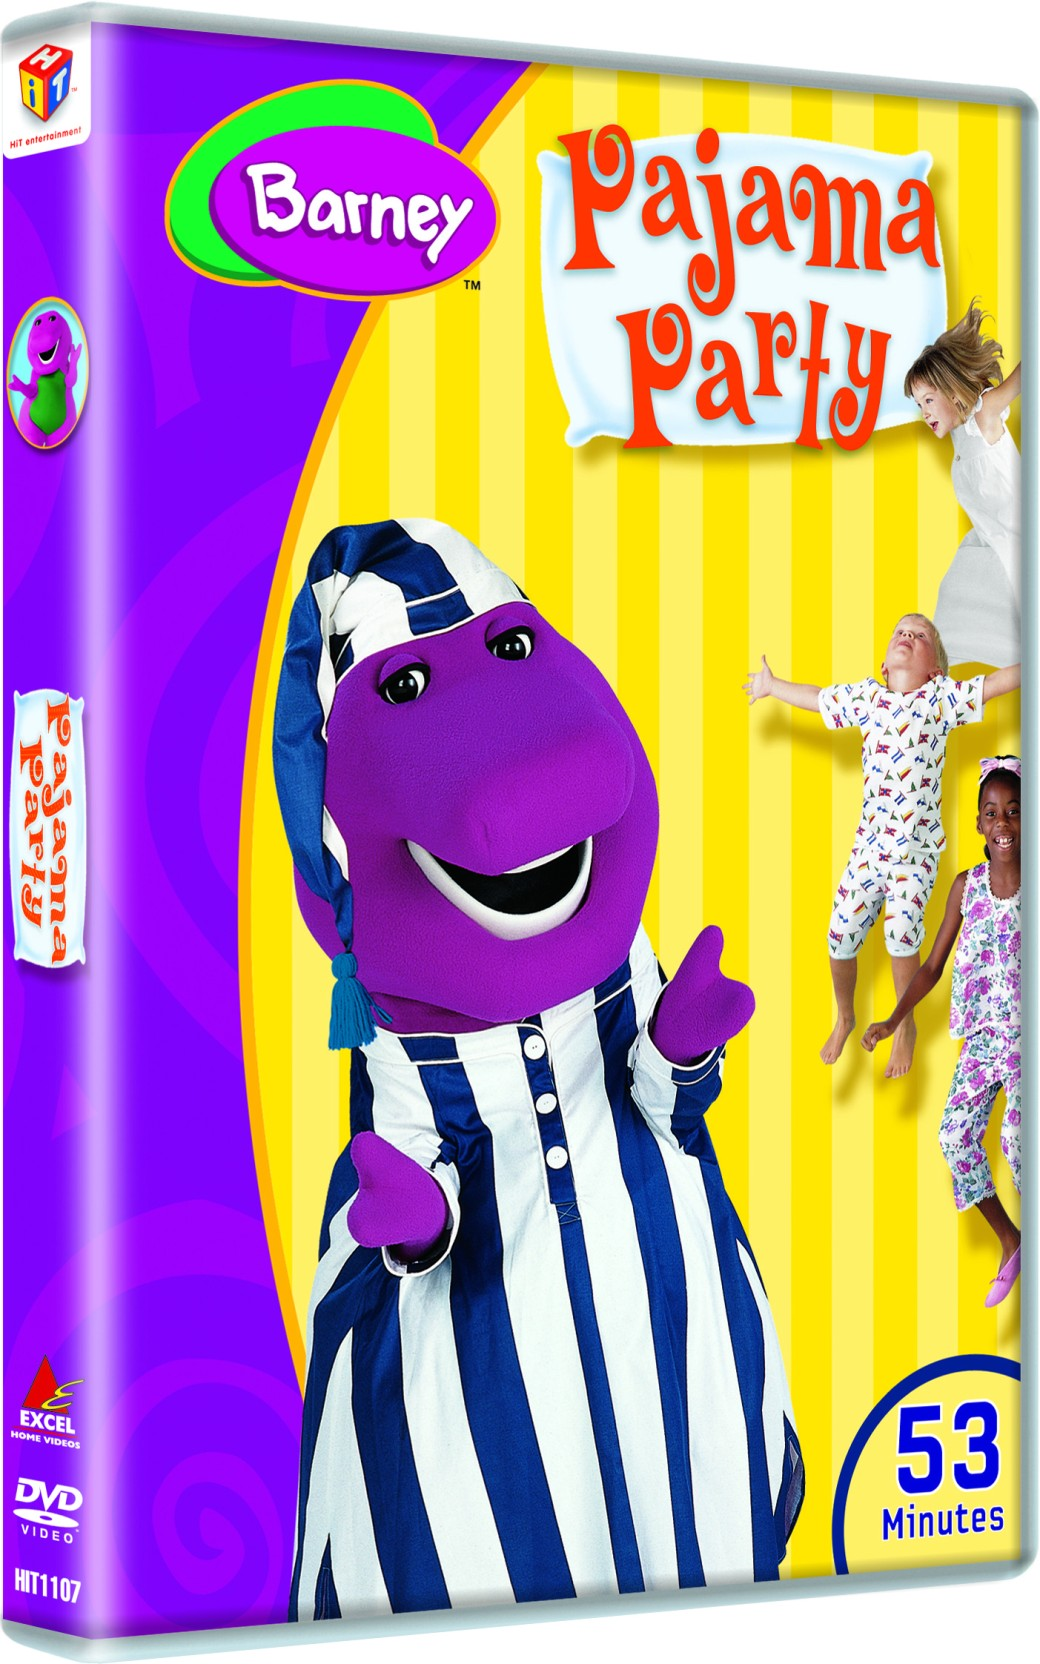 barney  pajama party price in india